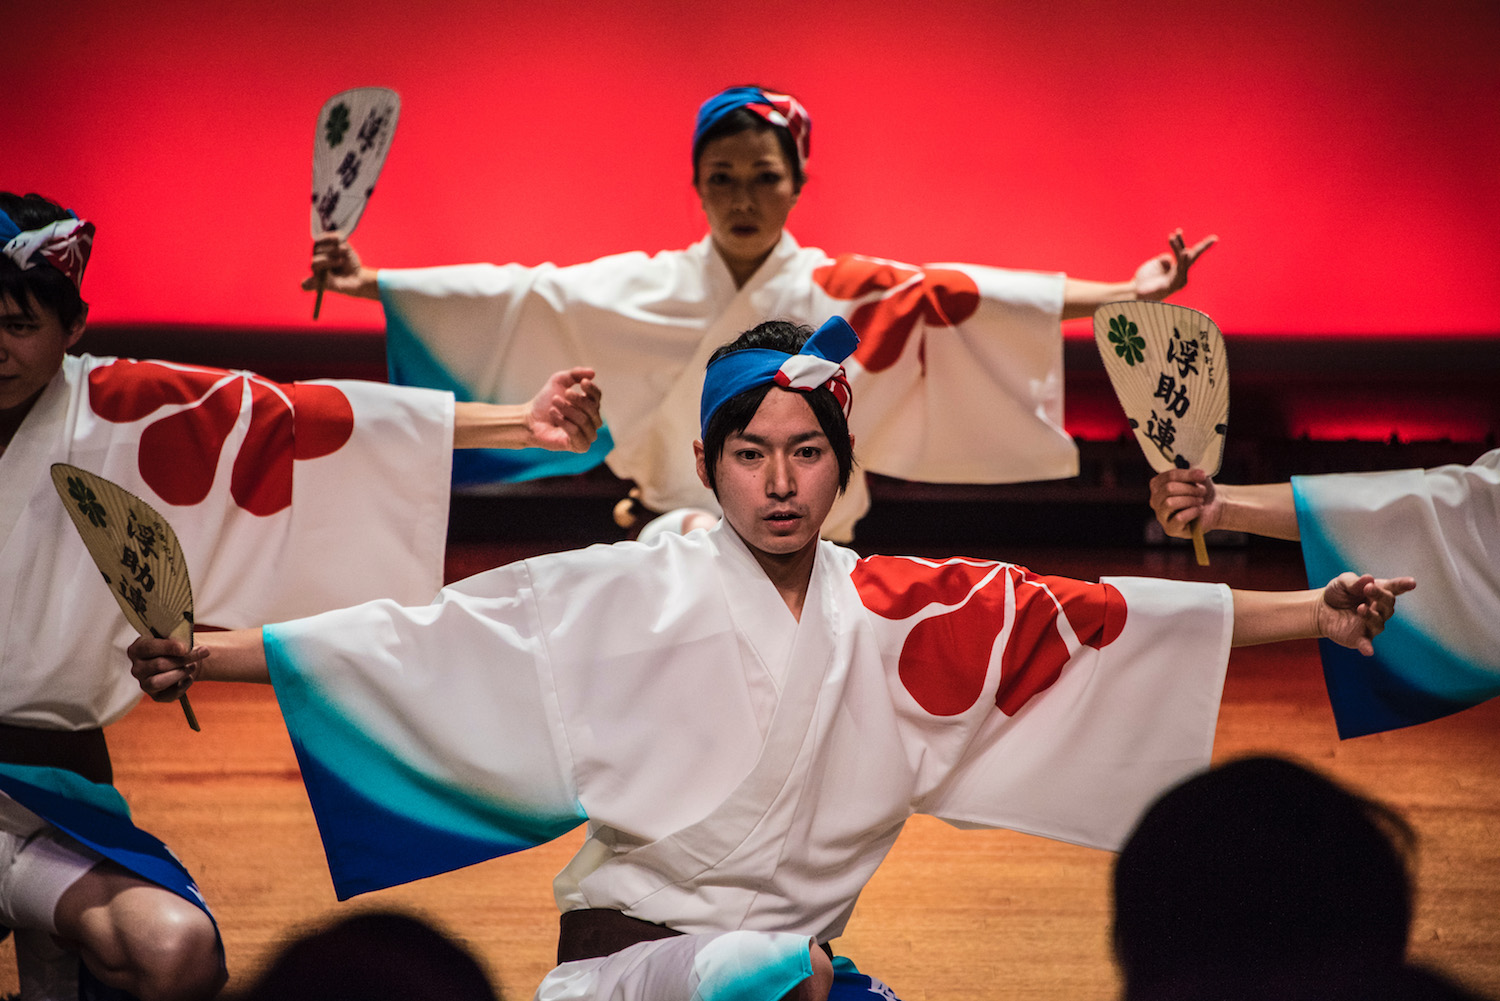 Awa Odori Dance in Tokushima, Japan